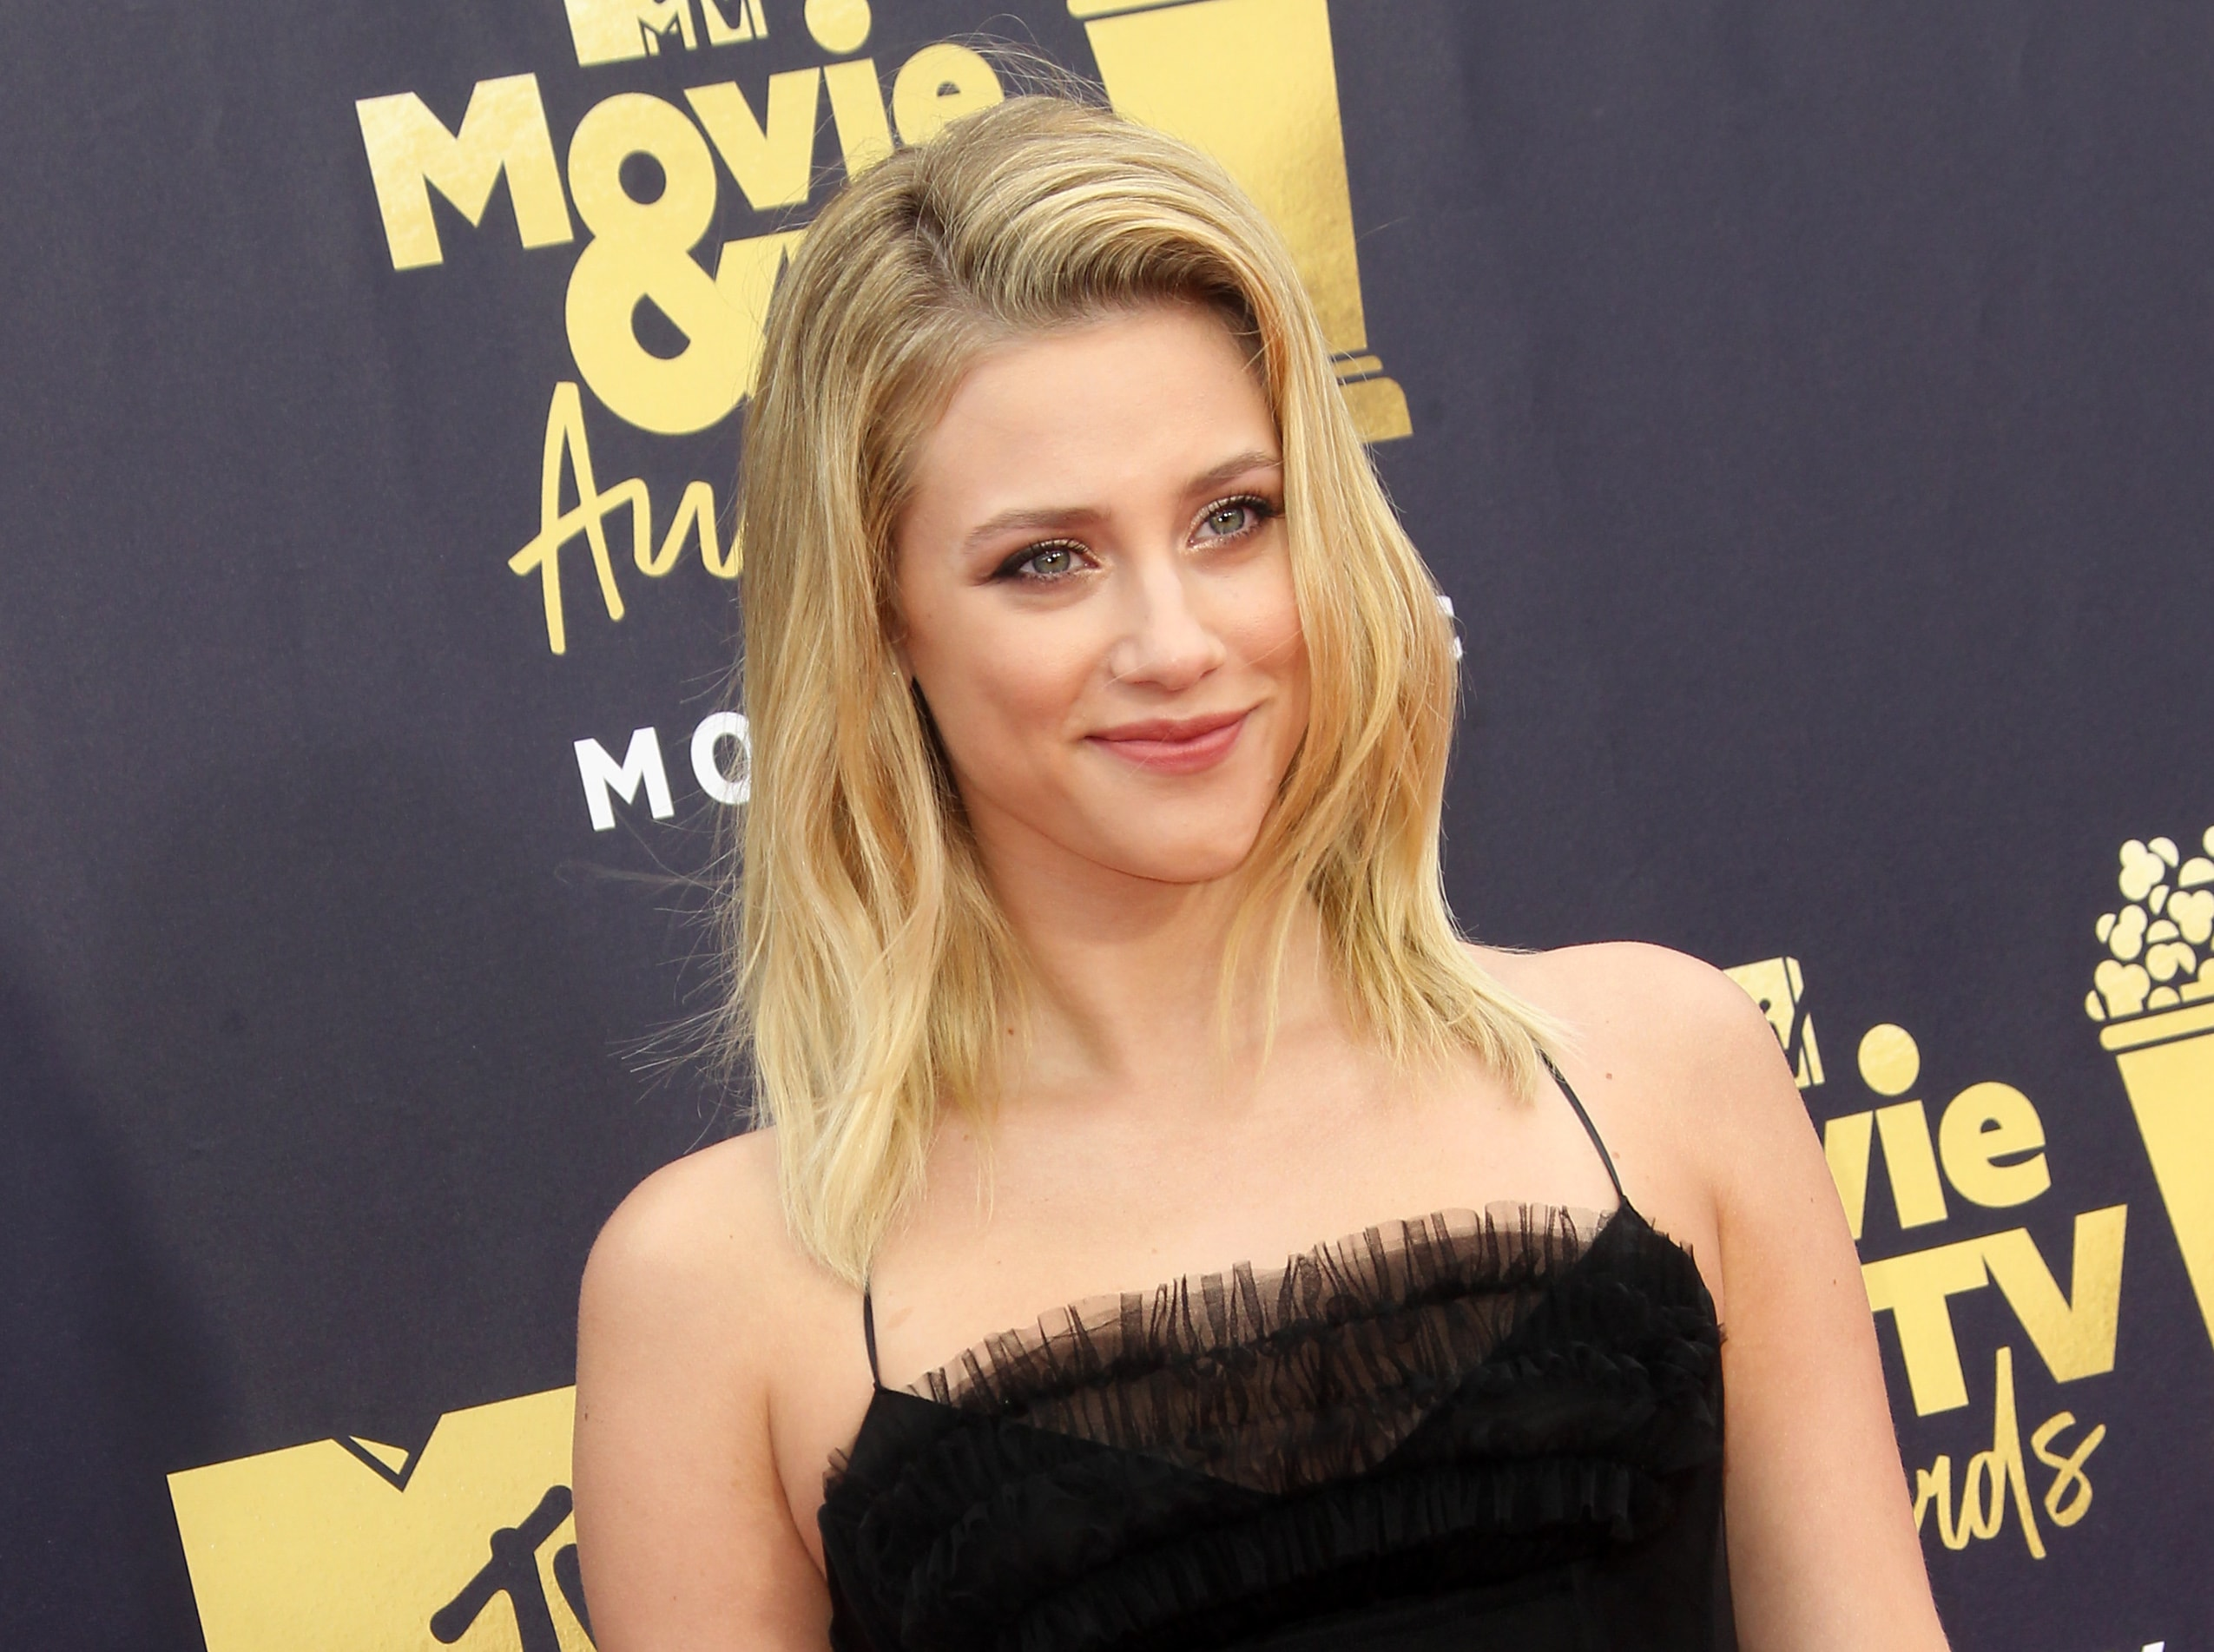 Lili Reinhart is clapping back at haters who are invalidating her body dysmorphia. (Photo: WENN)